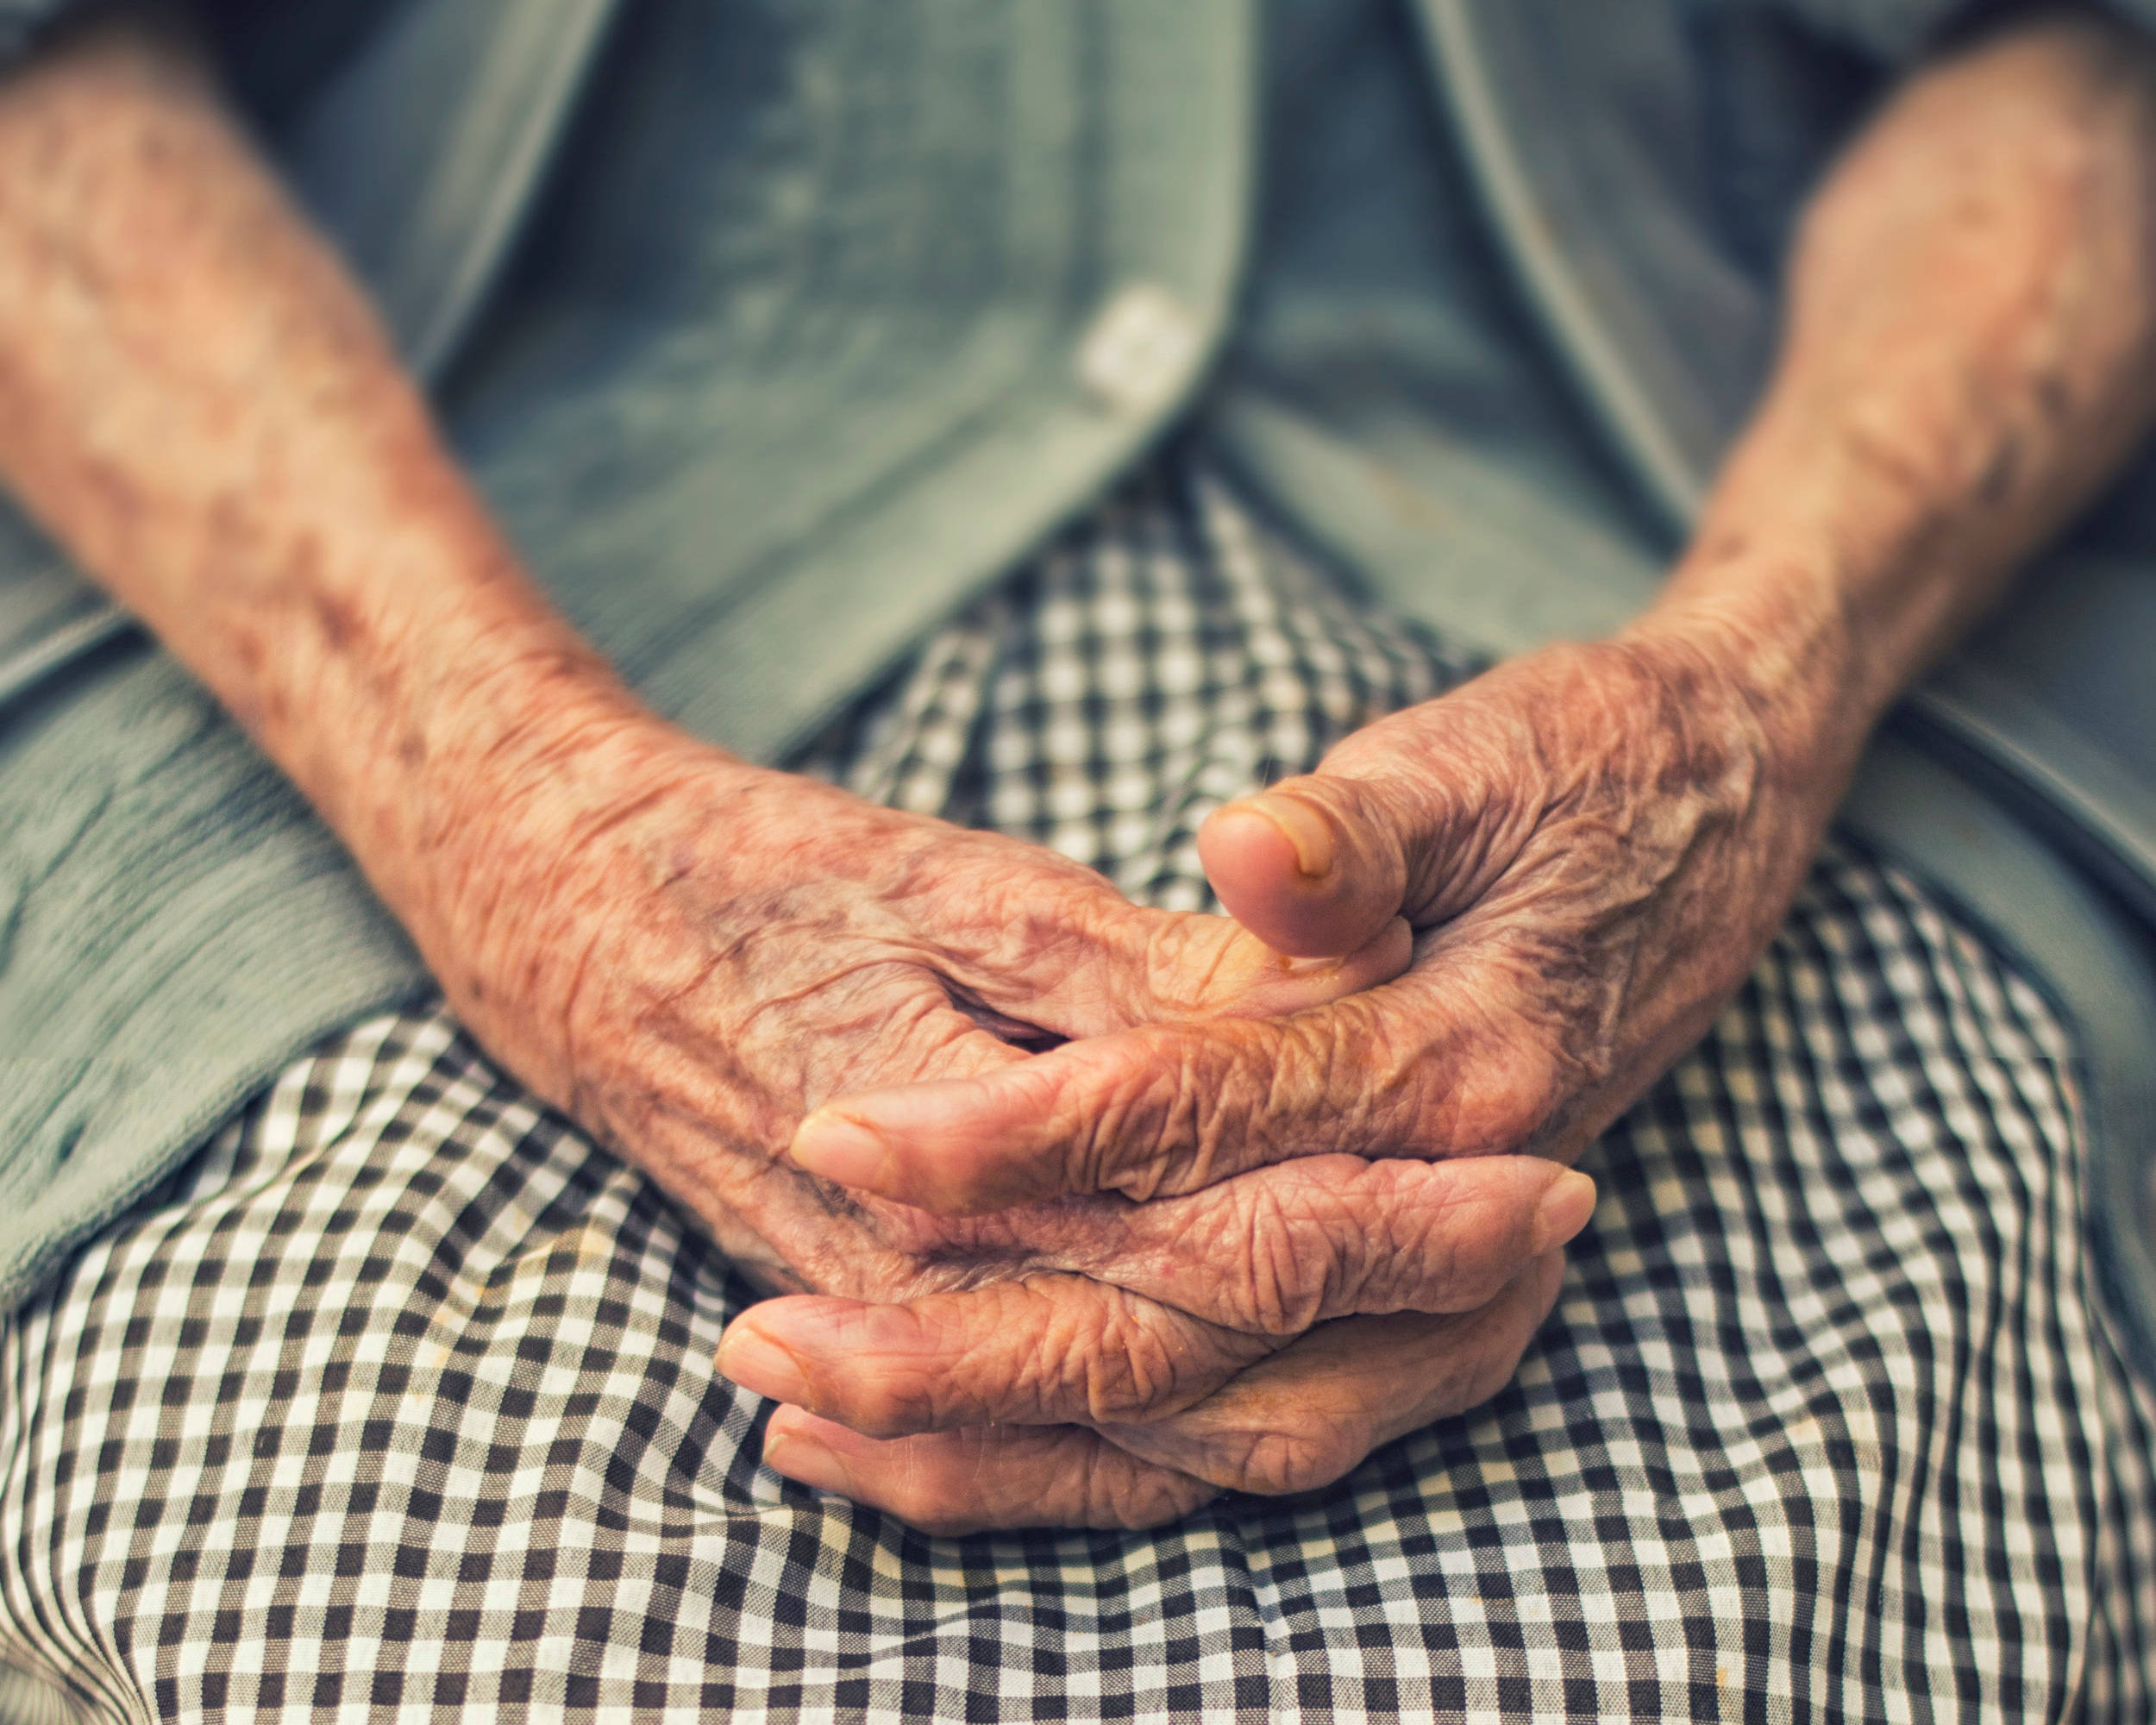 Nursing home abuse often happens in the following ways: - Neglect that results in bed sores or other injuriesFractured bones from abuse or from a fall that occurred due to neglectPhysical abuseEmotional abuseSexual abuseTheftMedication errorsLack of medication